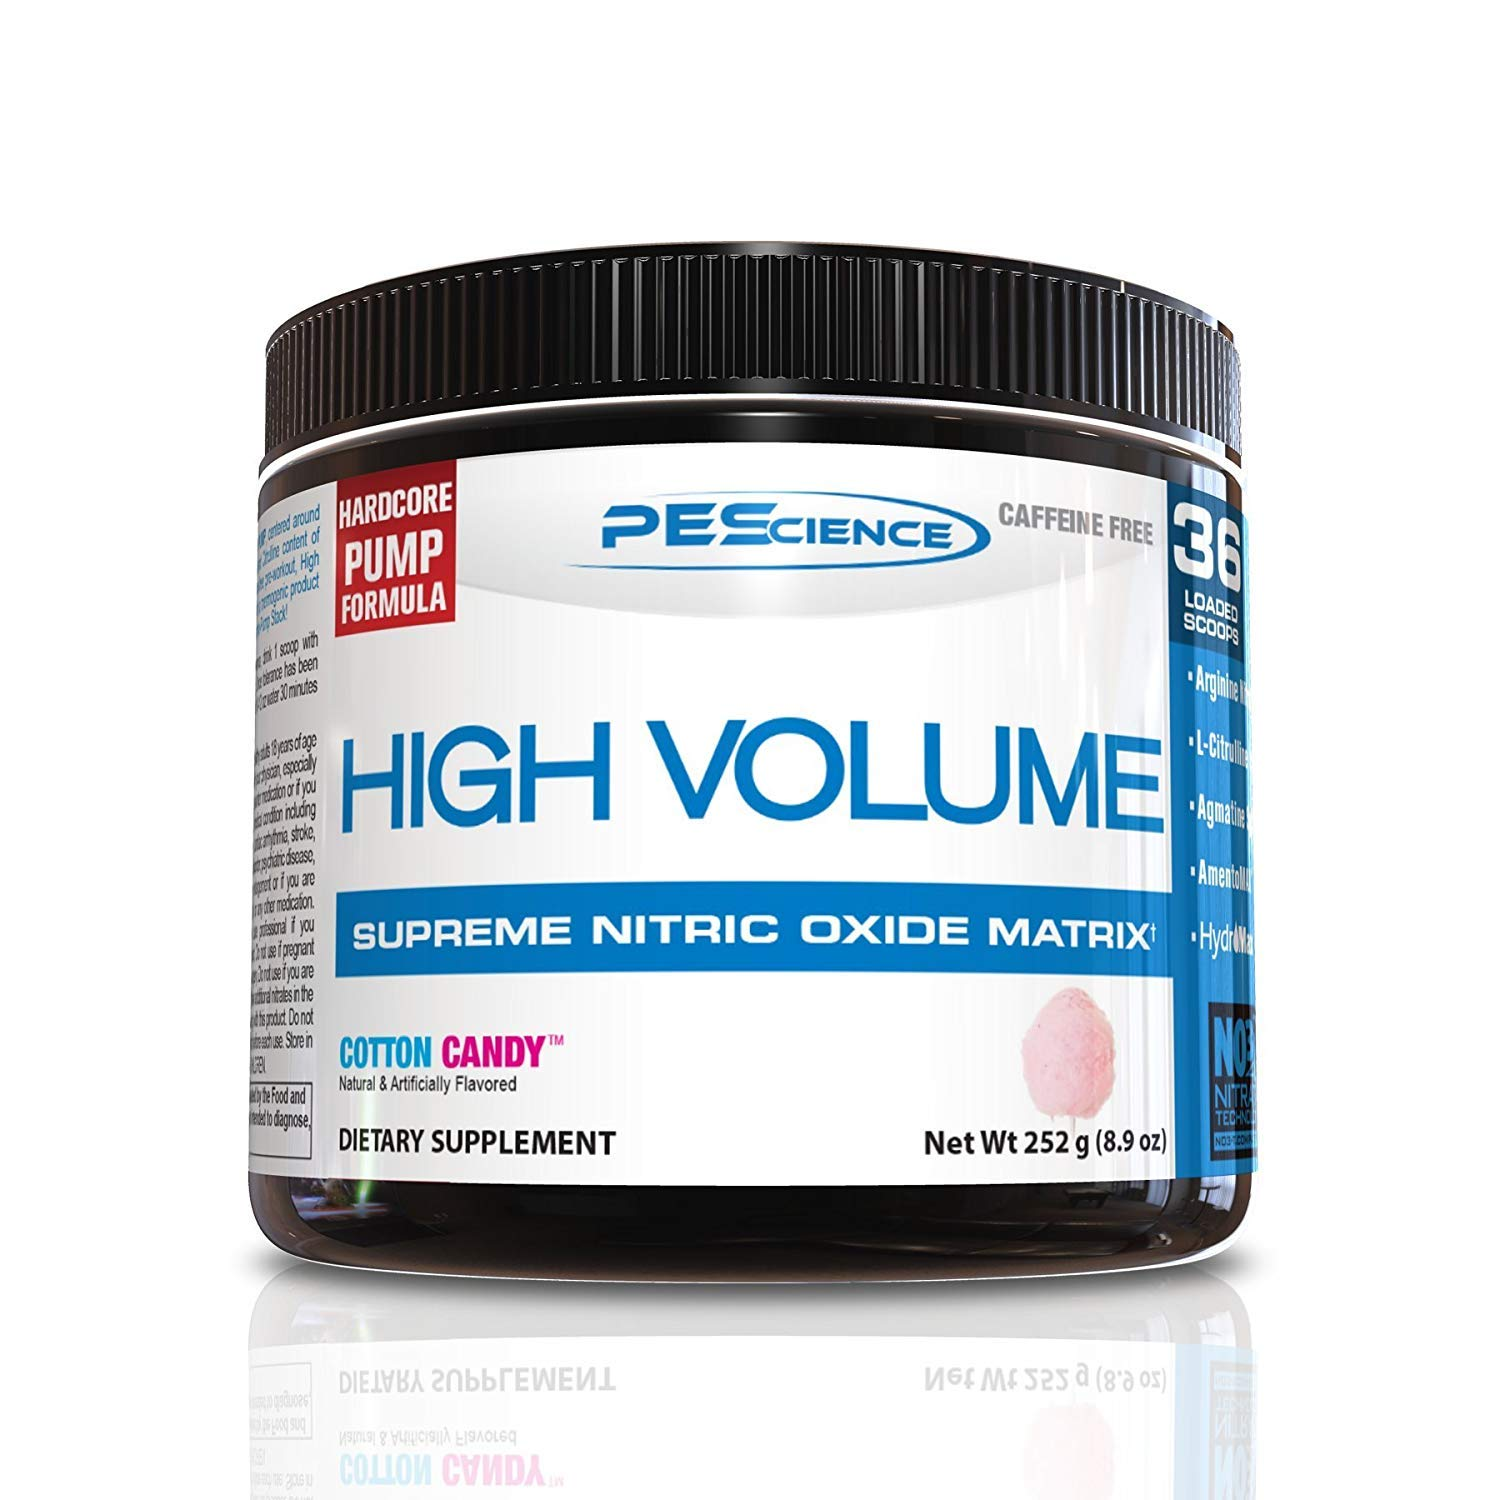 PEScience High Volume Caffeine Free Pump Pre Workout, Cotton Candy, 252 Gram ... by PEScience